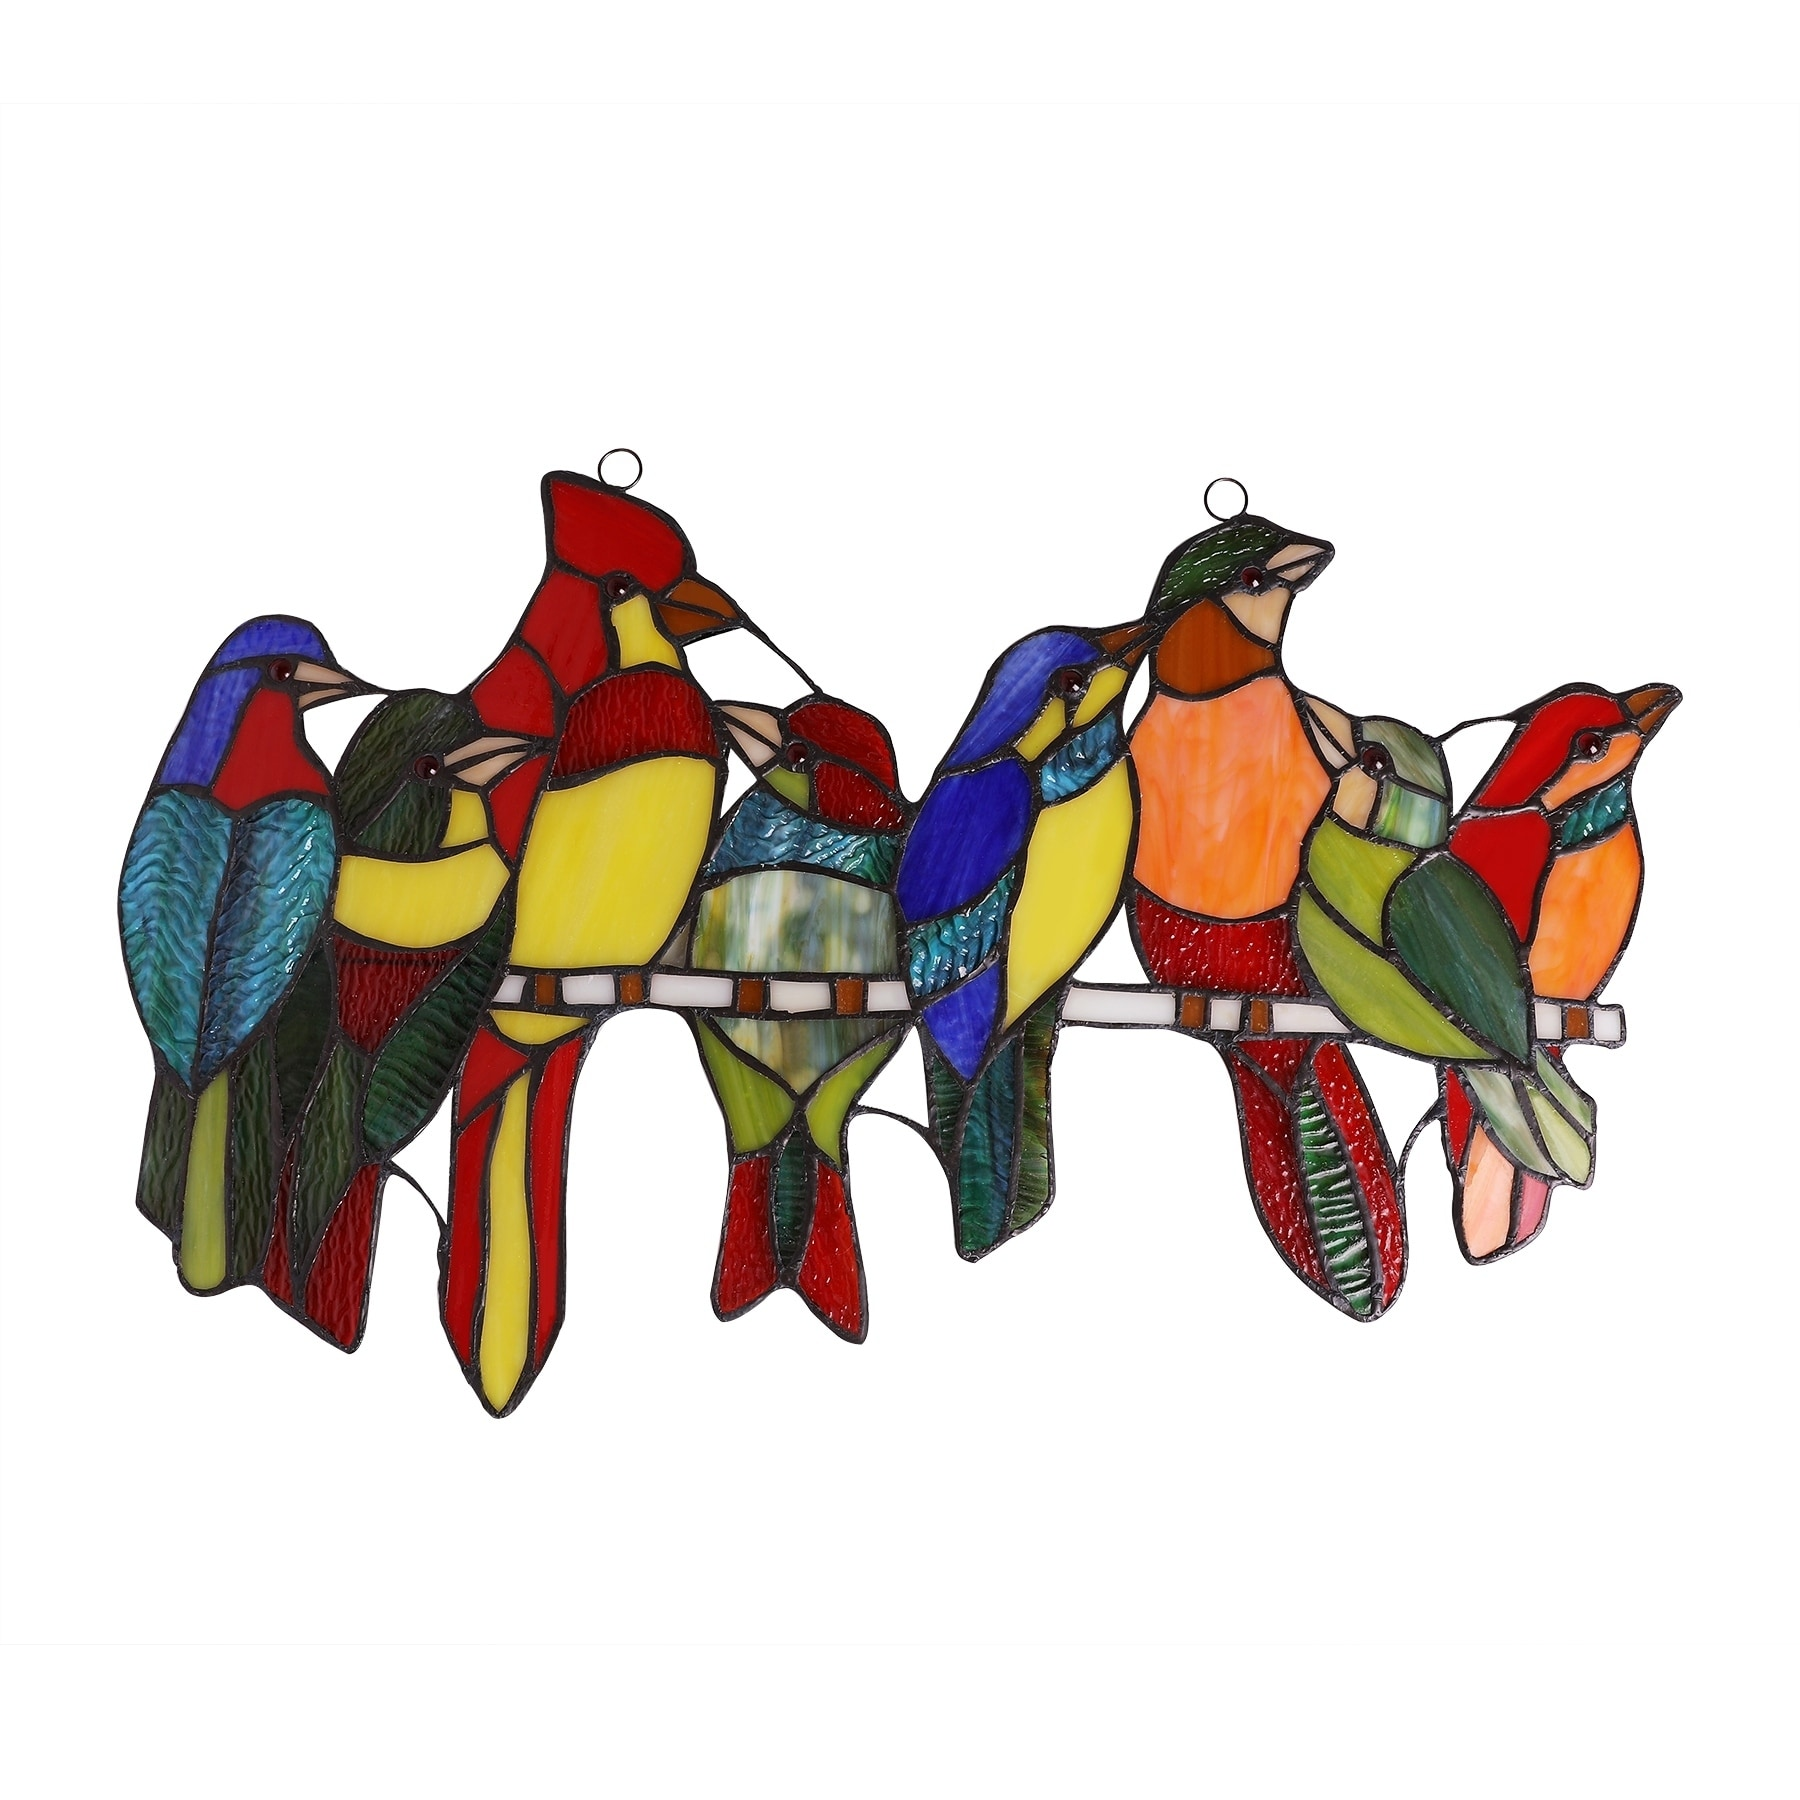 Shop Co Z Stained Glass Birds Brood Tiffany Window Panel 21 50 X 13 H Overstock 29778398